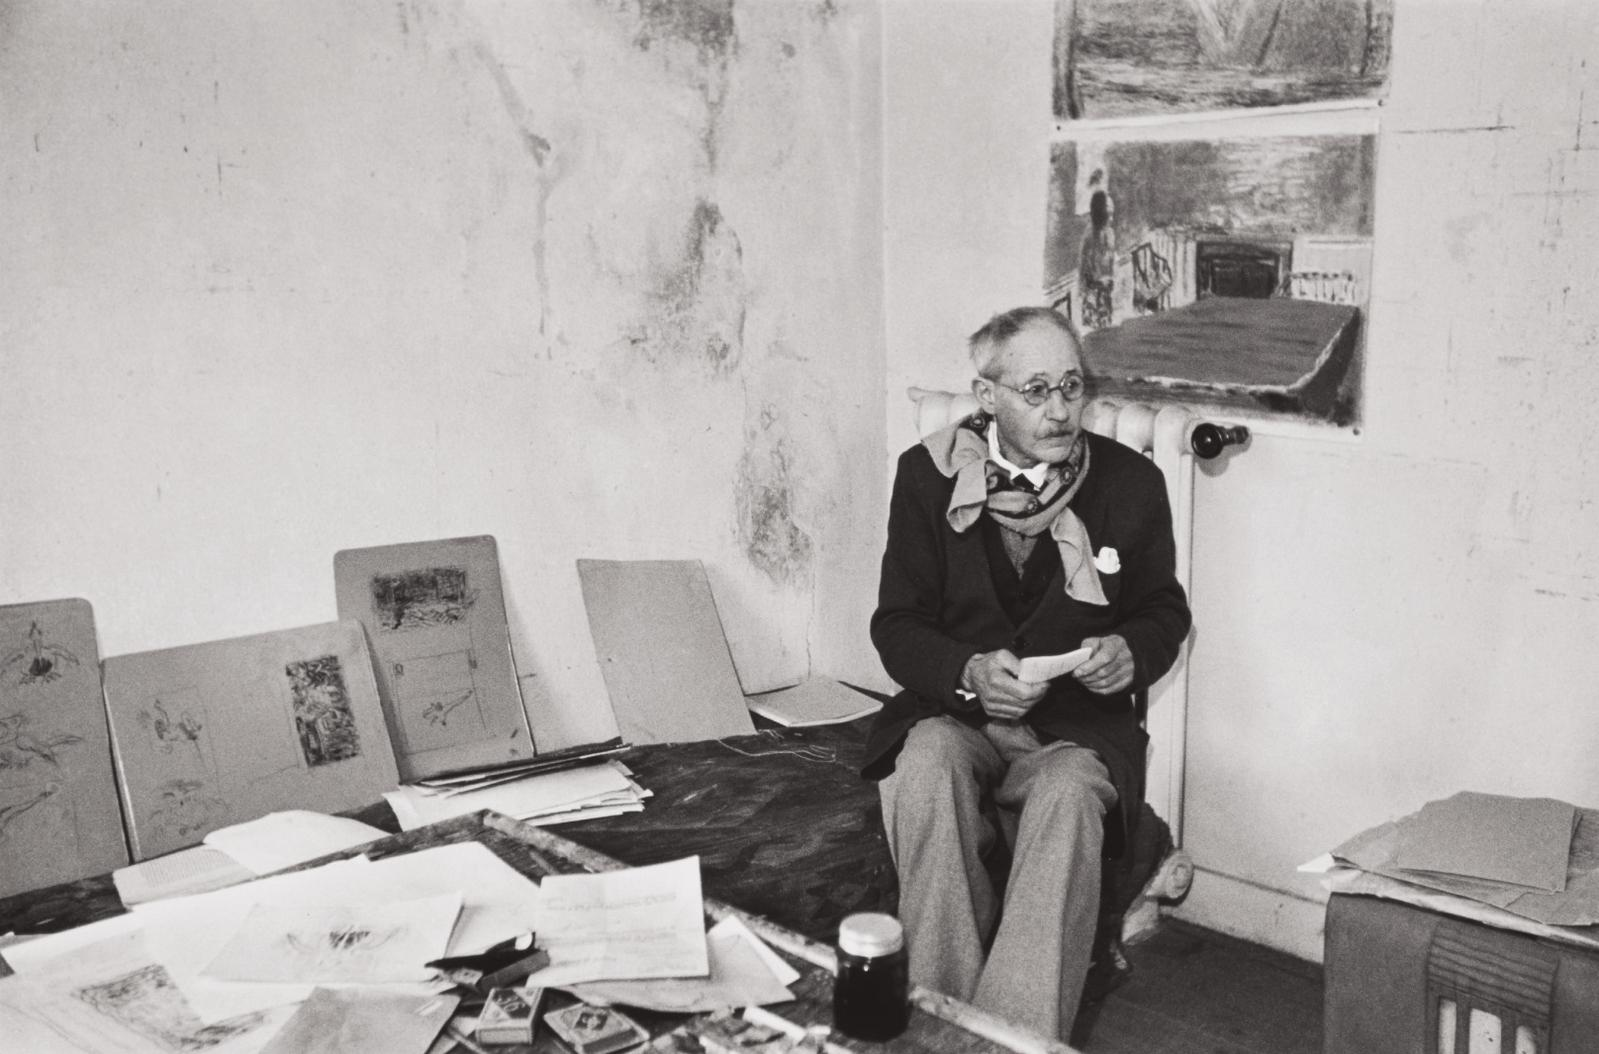 Henri Cartier-Bresson-Pierre Bonnard, Le Cannet, France-1944